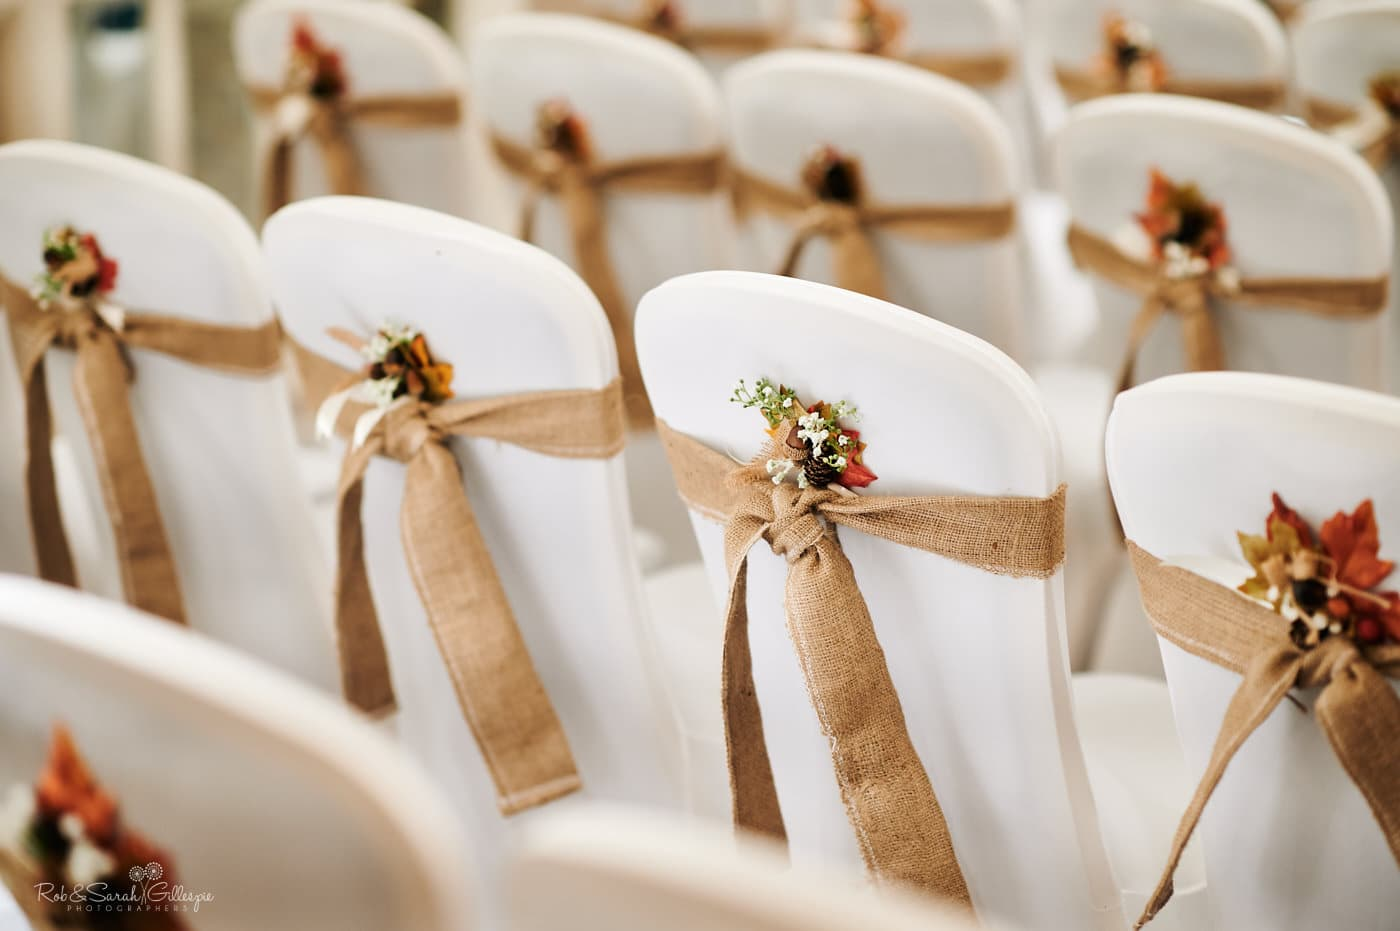 Detail of hessian tie-backs on chairs for wedding at Moor Hall Hotel